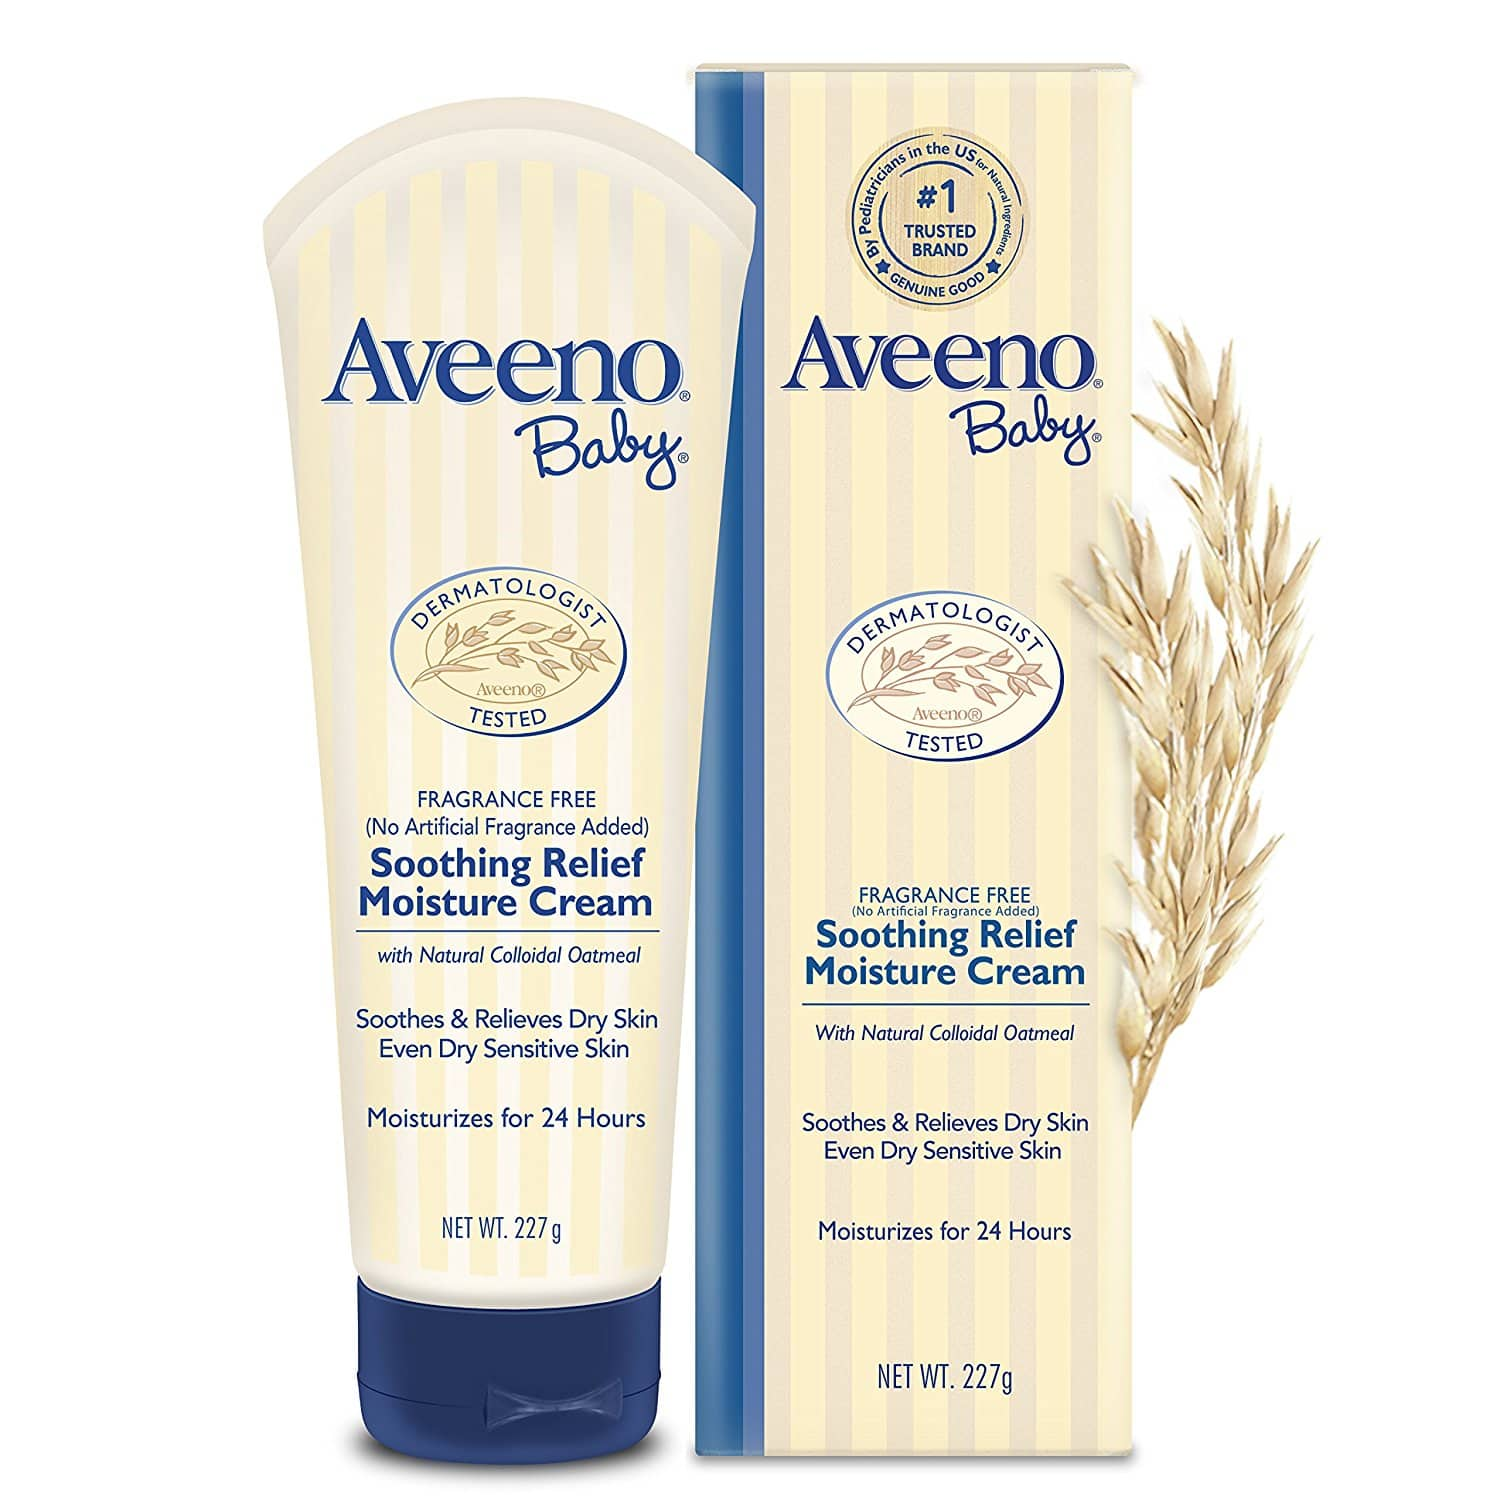 Aveeno Baby Soothing Relief Moisturizing Cream For Dry Sensitive Skin, 8 Oz. $5.64 $5.63